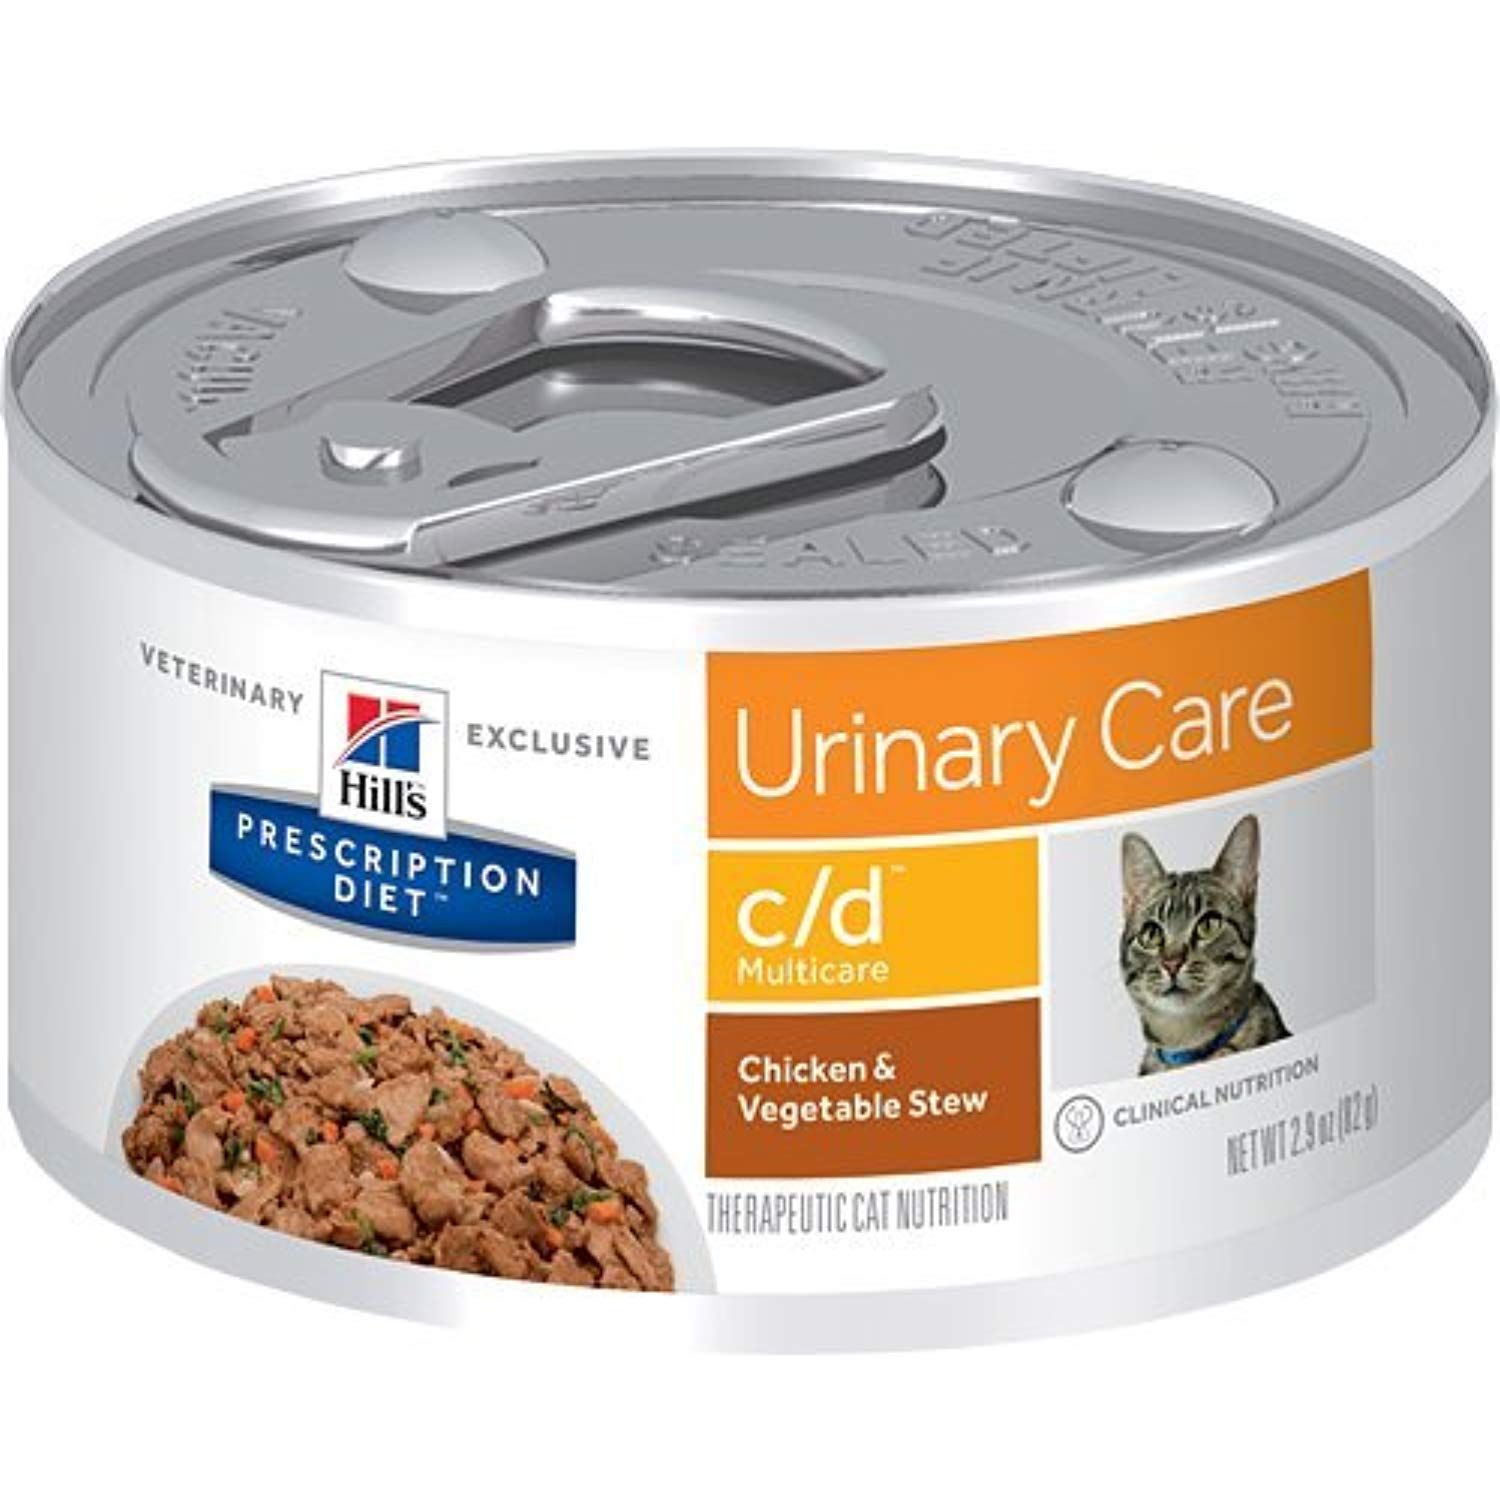 Hill S Prescription Diet C D Multicare Urinary Care Chicken And Vegetable Stew Canned Cat Food Hills Prescription Diet Chicken Vegetable Stew Animal Nutrition